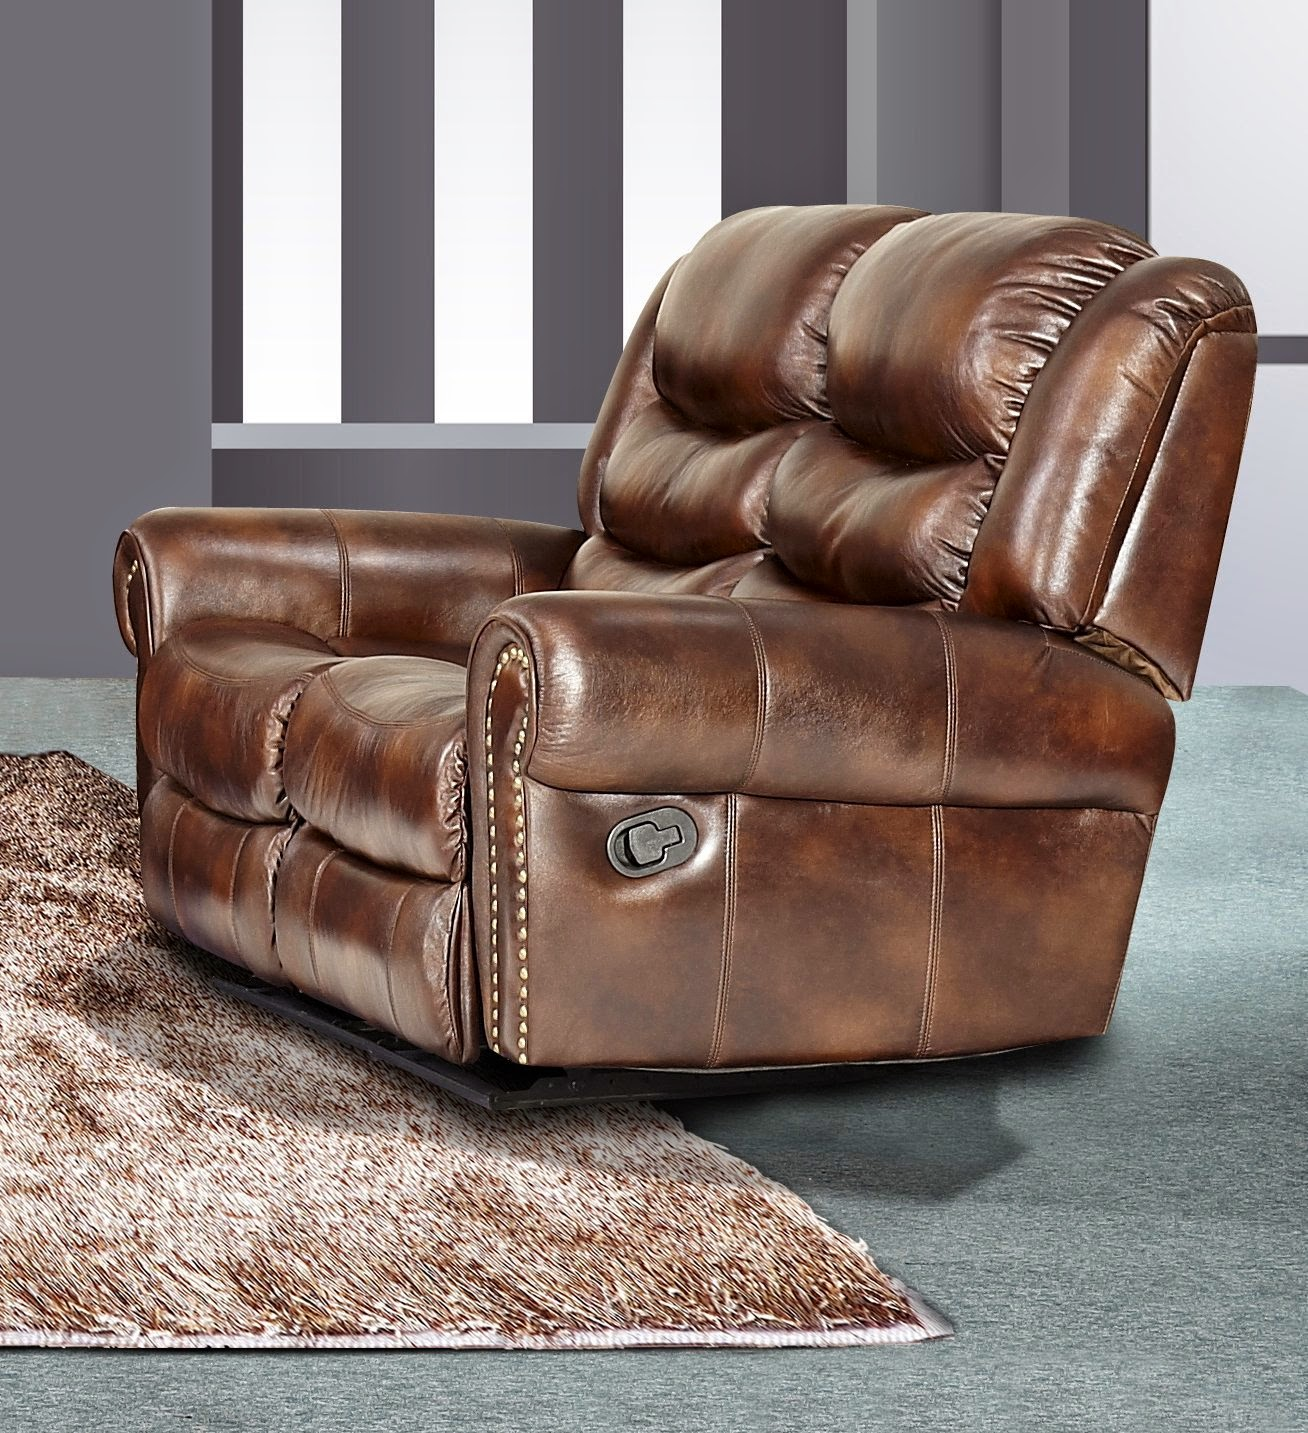 Safe 60 Off Huntington 3 Pc Bonded Leather Sofa Loveseat Chair Set With 5 Recliners